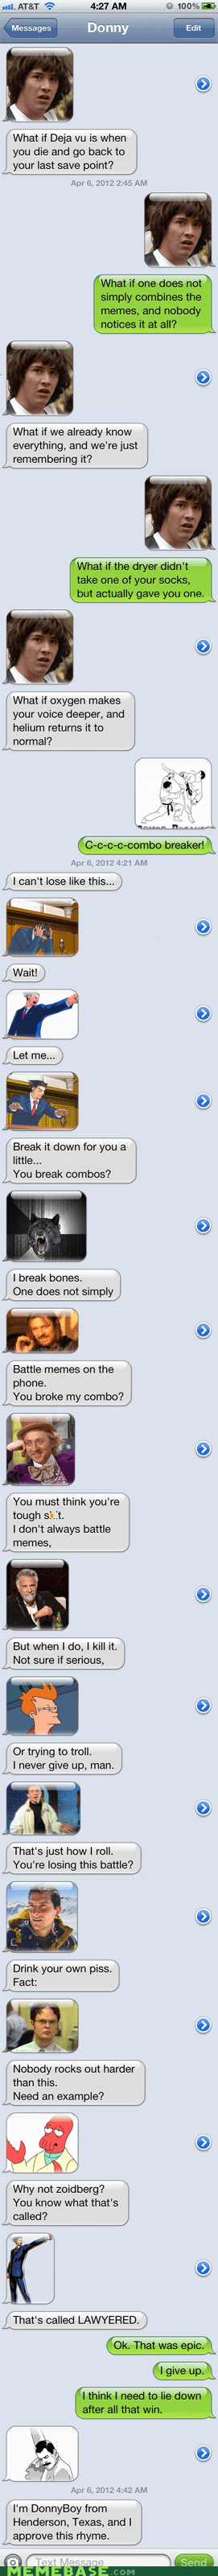 Battle,combo breaker,conspiracy keanu,phone,texts